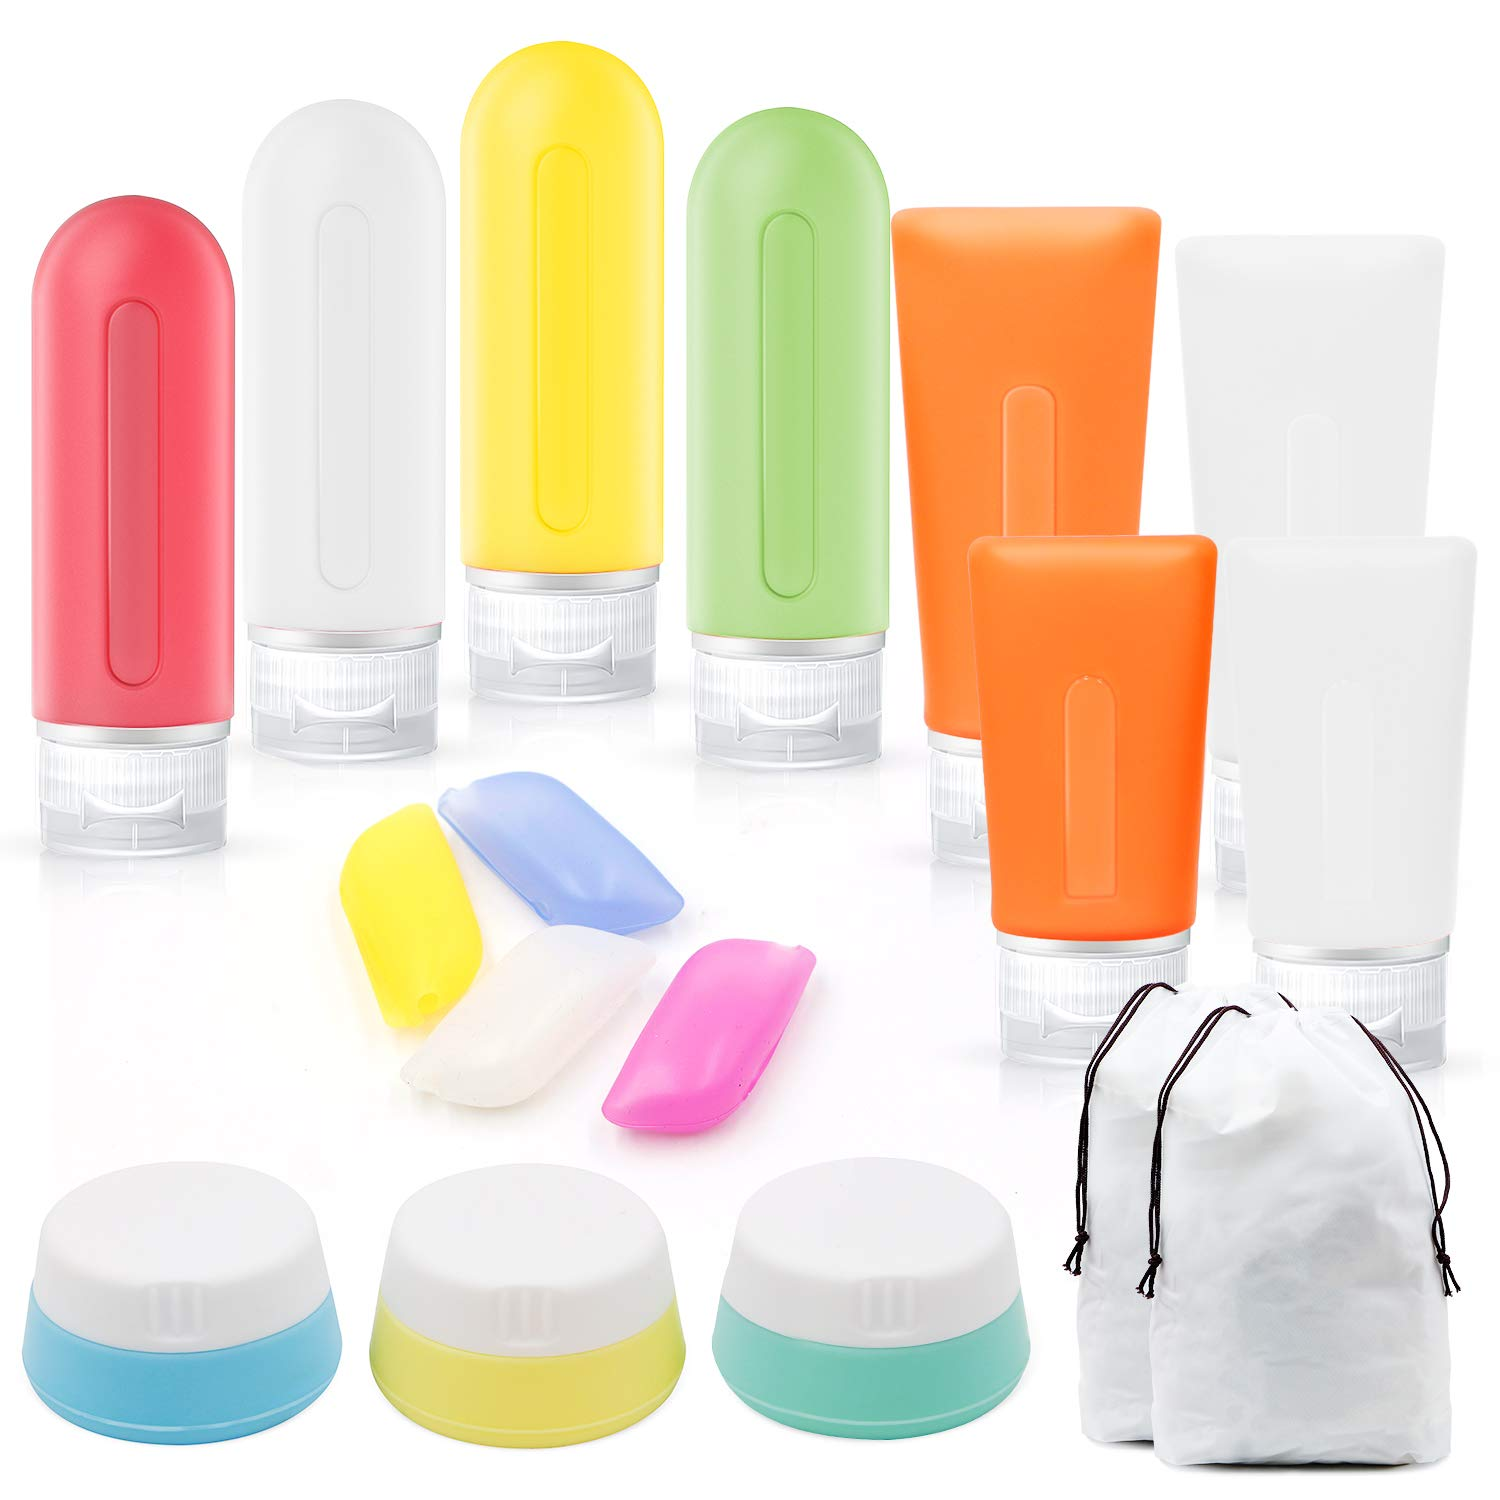 Houselog Travel Bottles,Leak Proof Silicone Travel Bottles Set TSA & Airline Approved with Cosmetic Travel Accessories Bottles Containers,Toothbrush Cover and Reusable Towel/Clothing Bag for Travel Camping